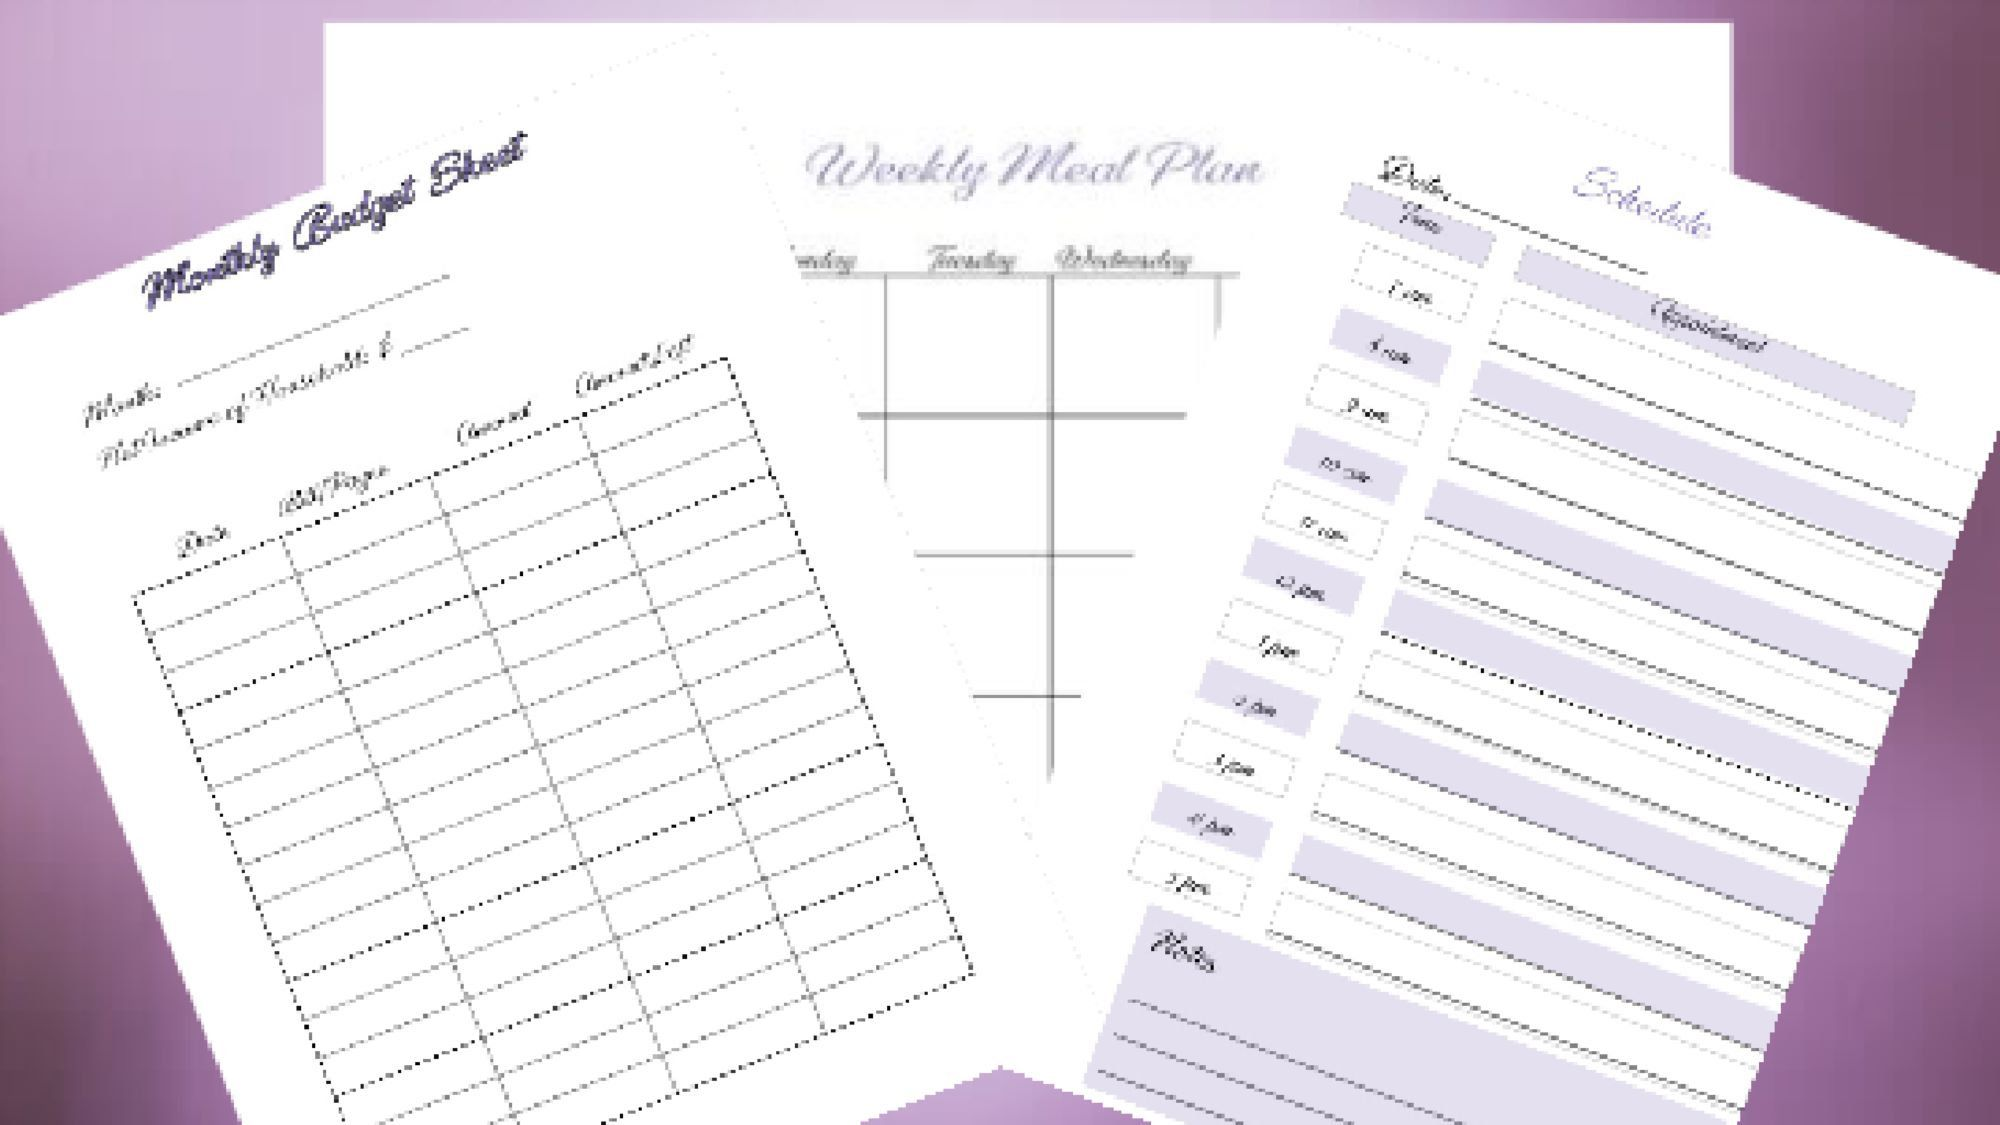 Monthly Budget Daily Schedule And Weekly Meal Planner